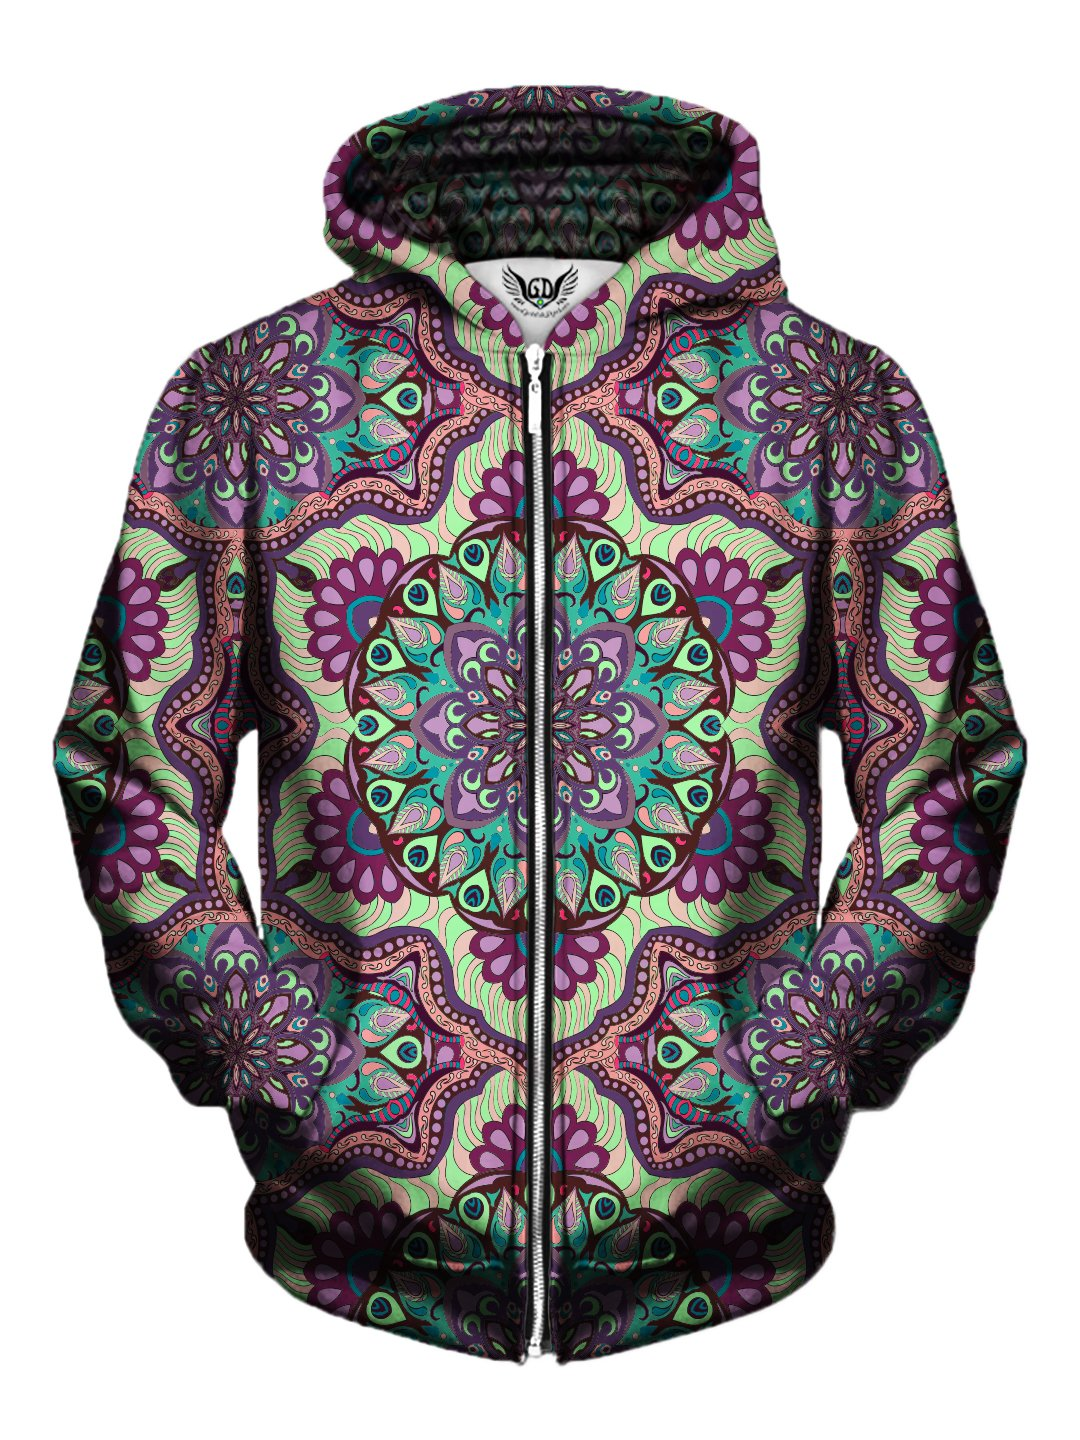 Men's purple, green & pink pastel mandala zip-up hoodie front view.